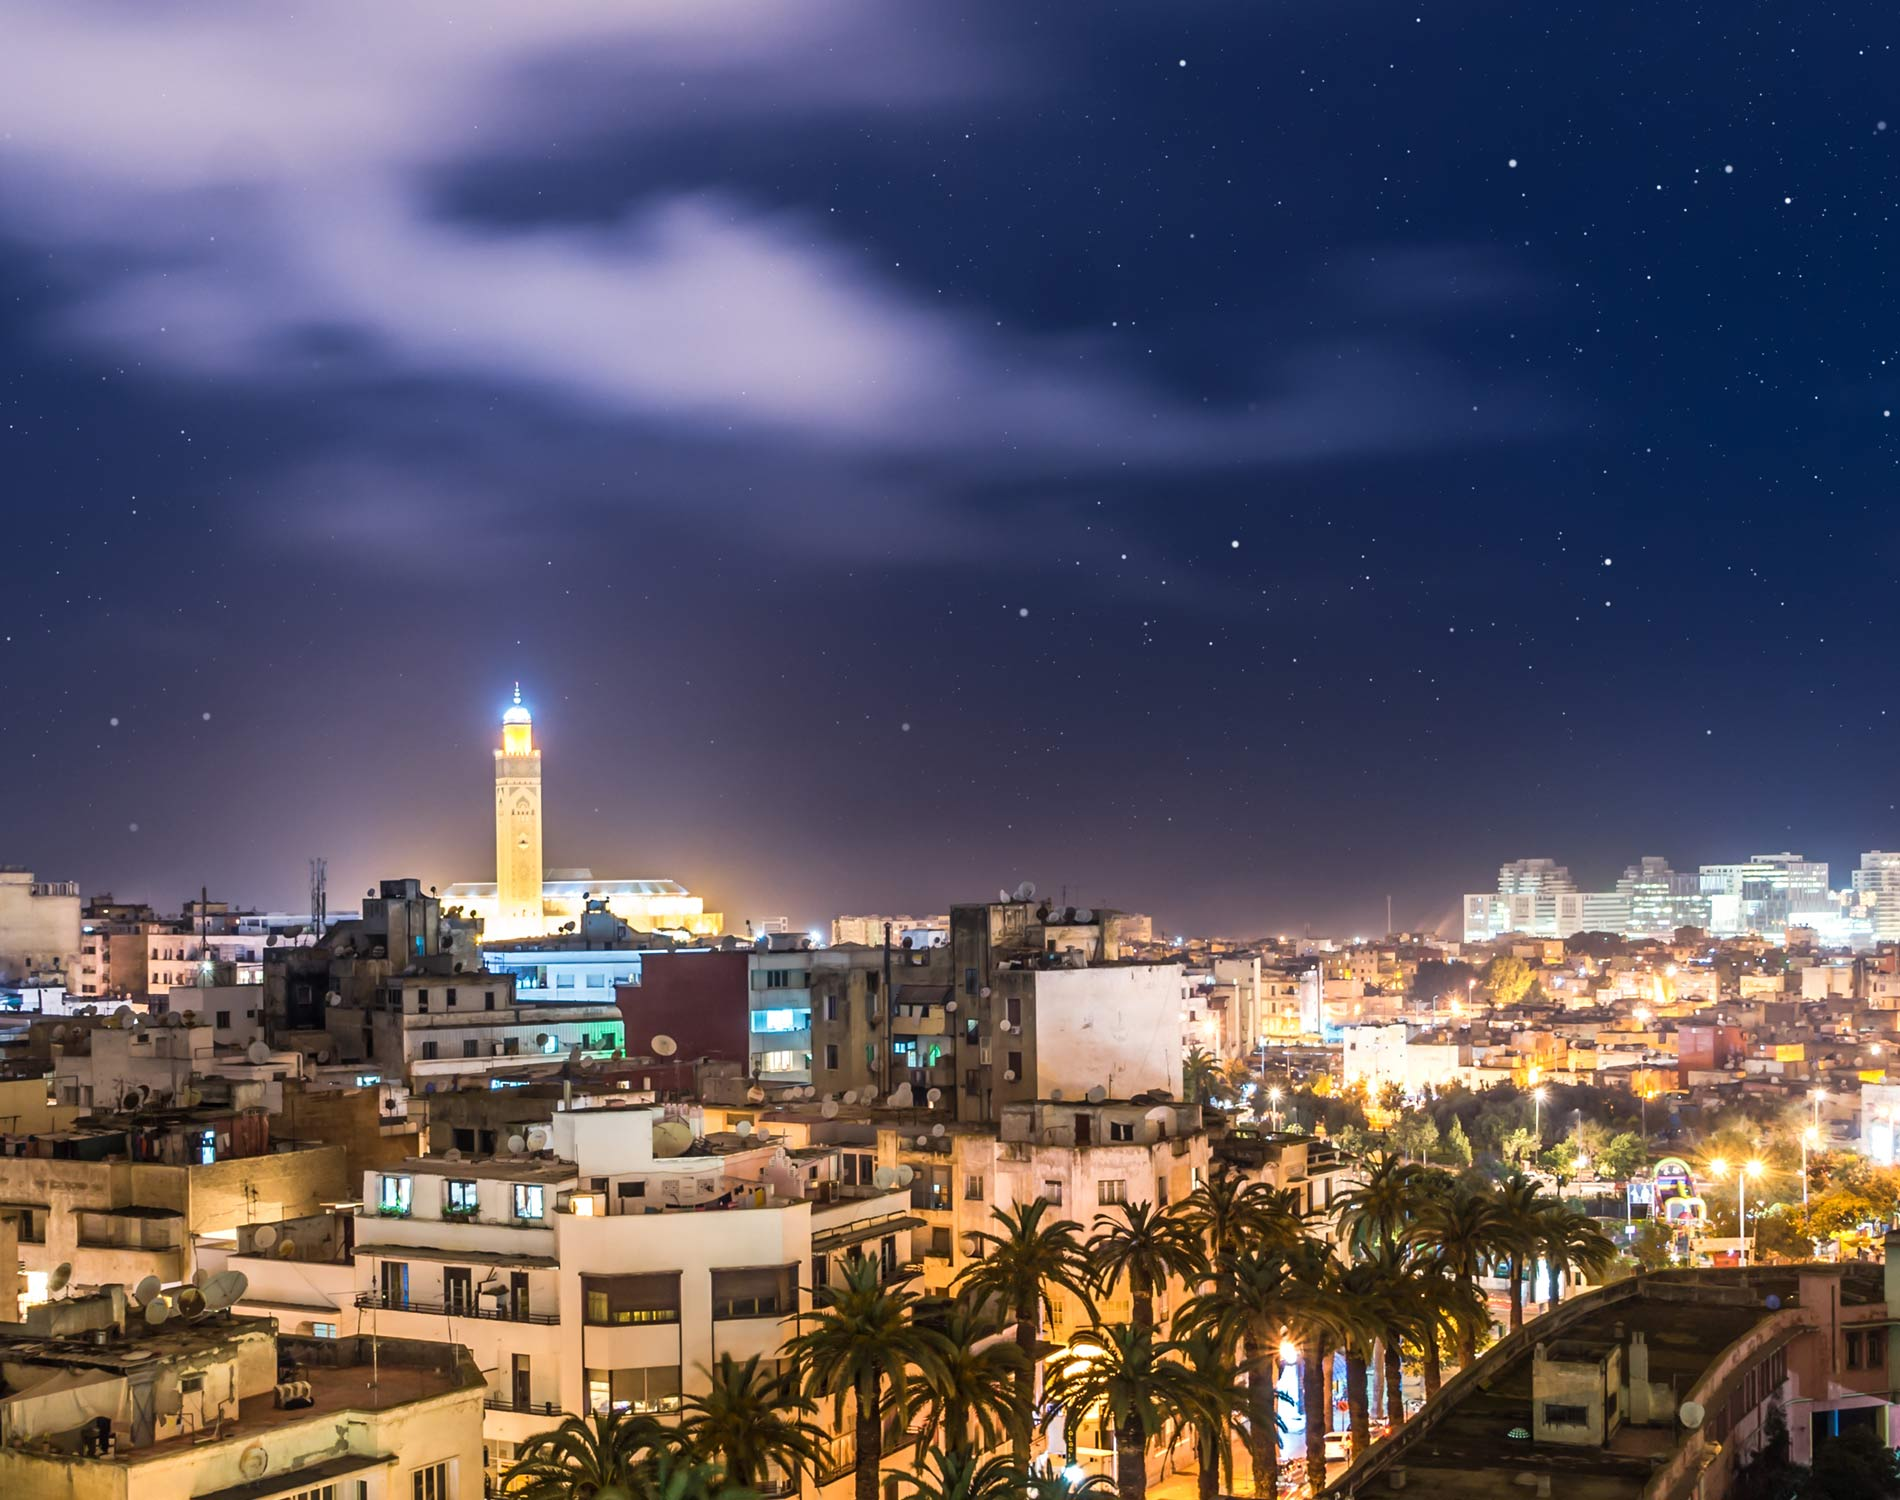 /-/media/images/website/background-images/offices/casablanca/casablanca.jpg